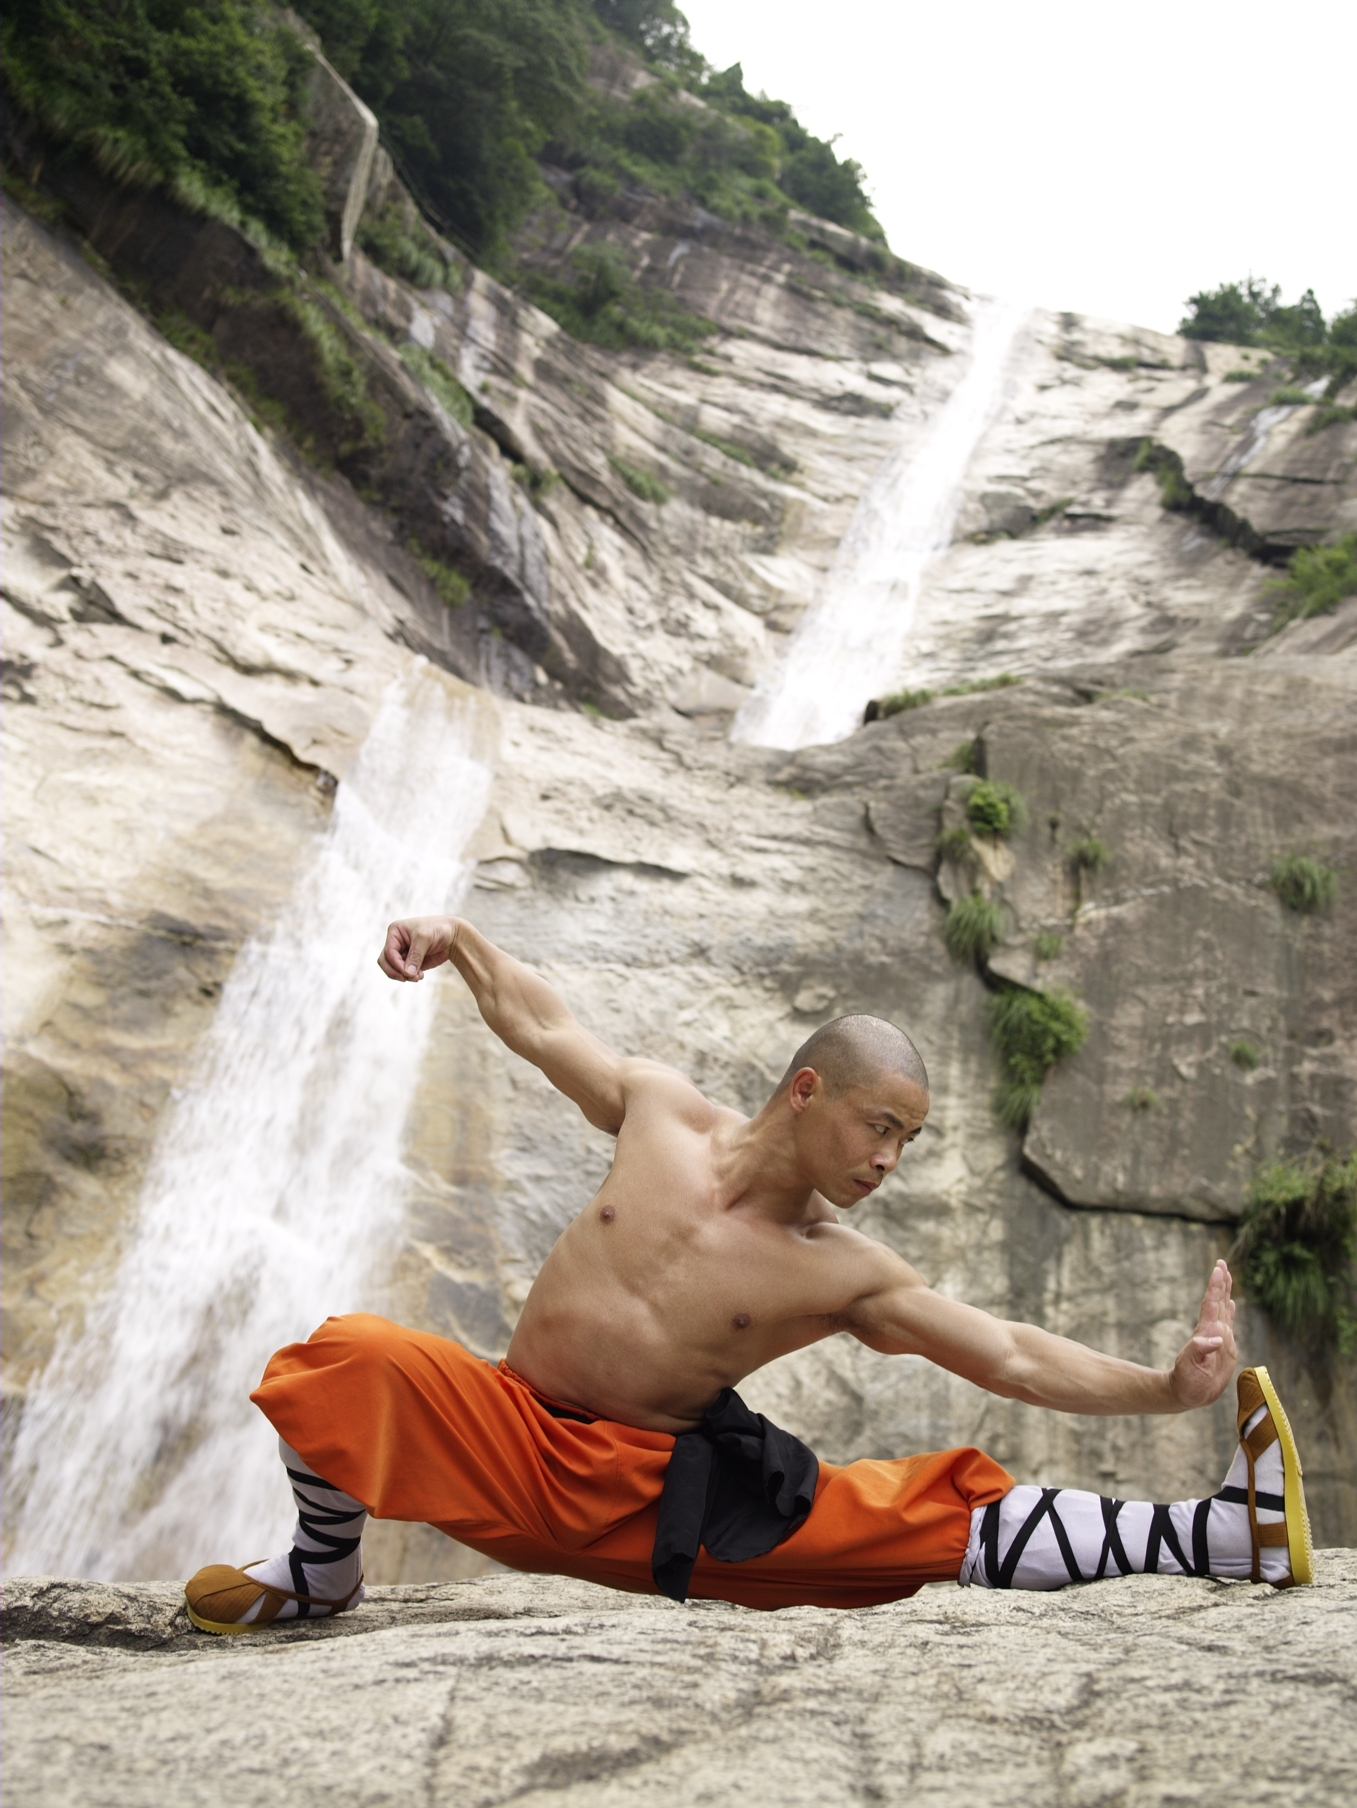 Scientists Probed Shaolin By Superman